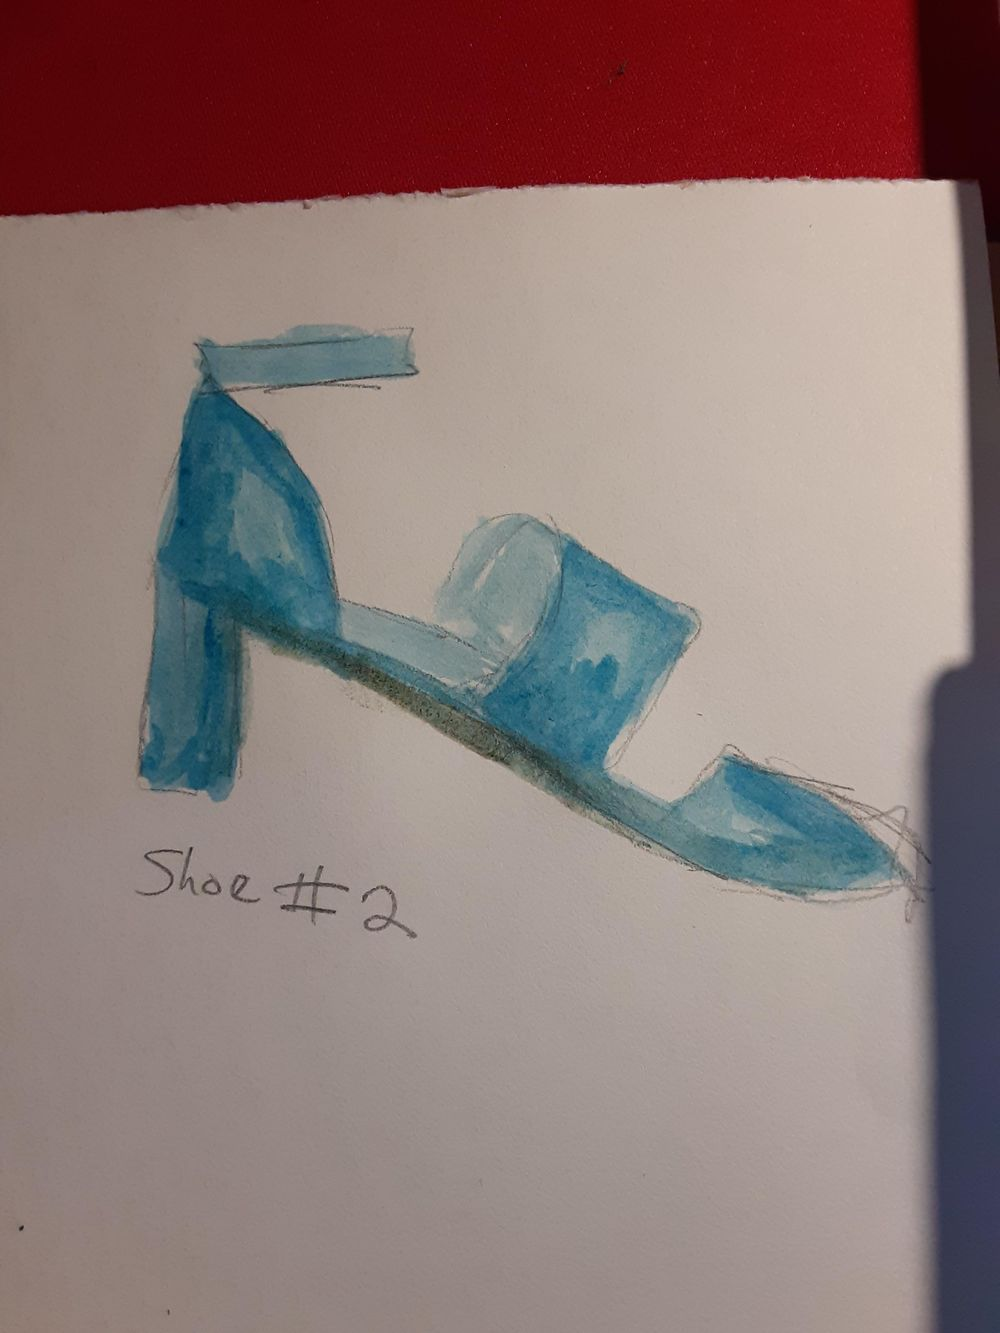 My Shoes - image 2 - student project